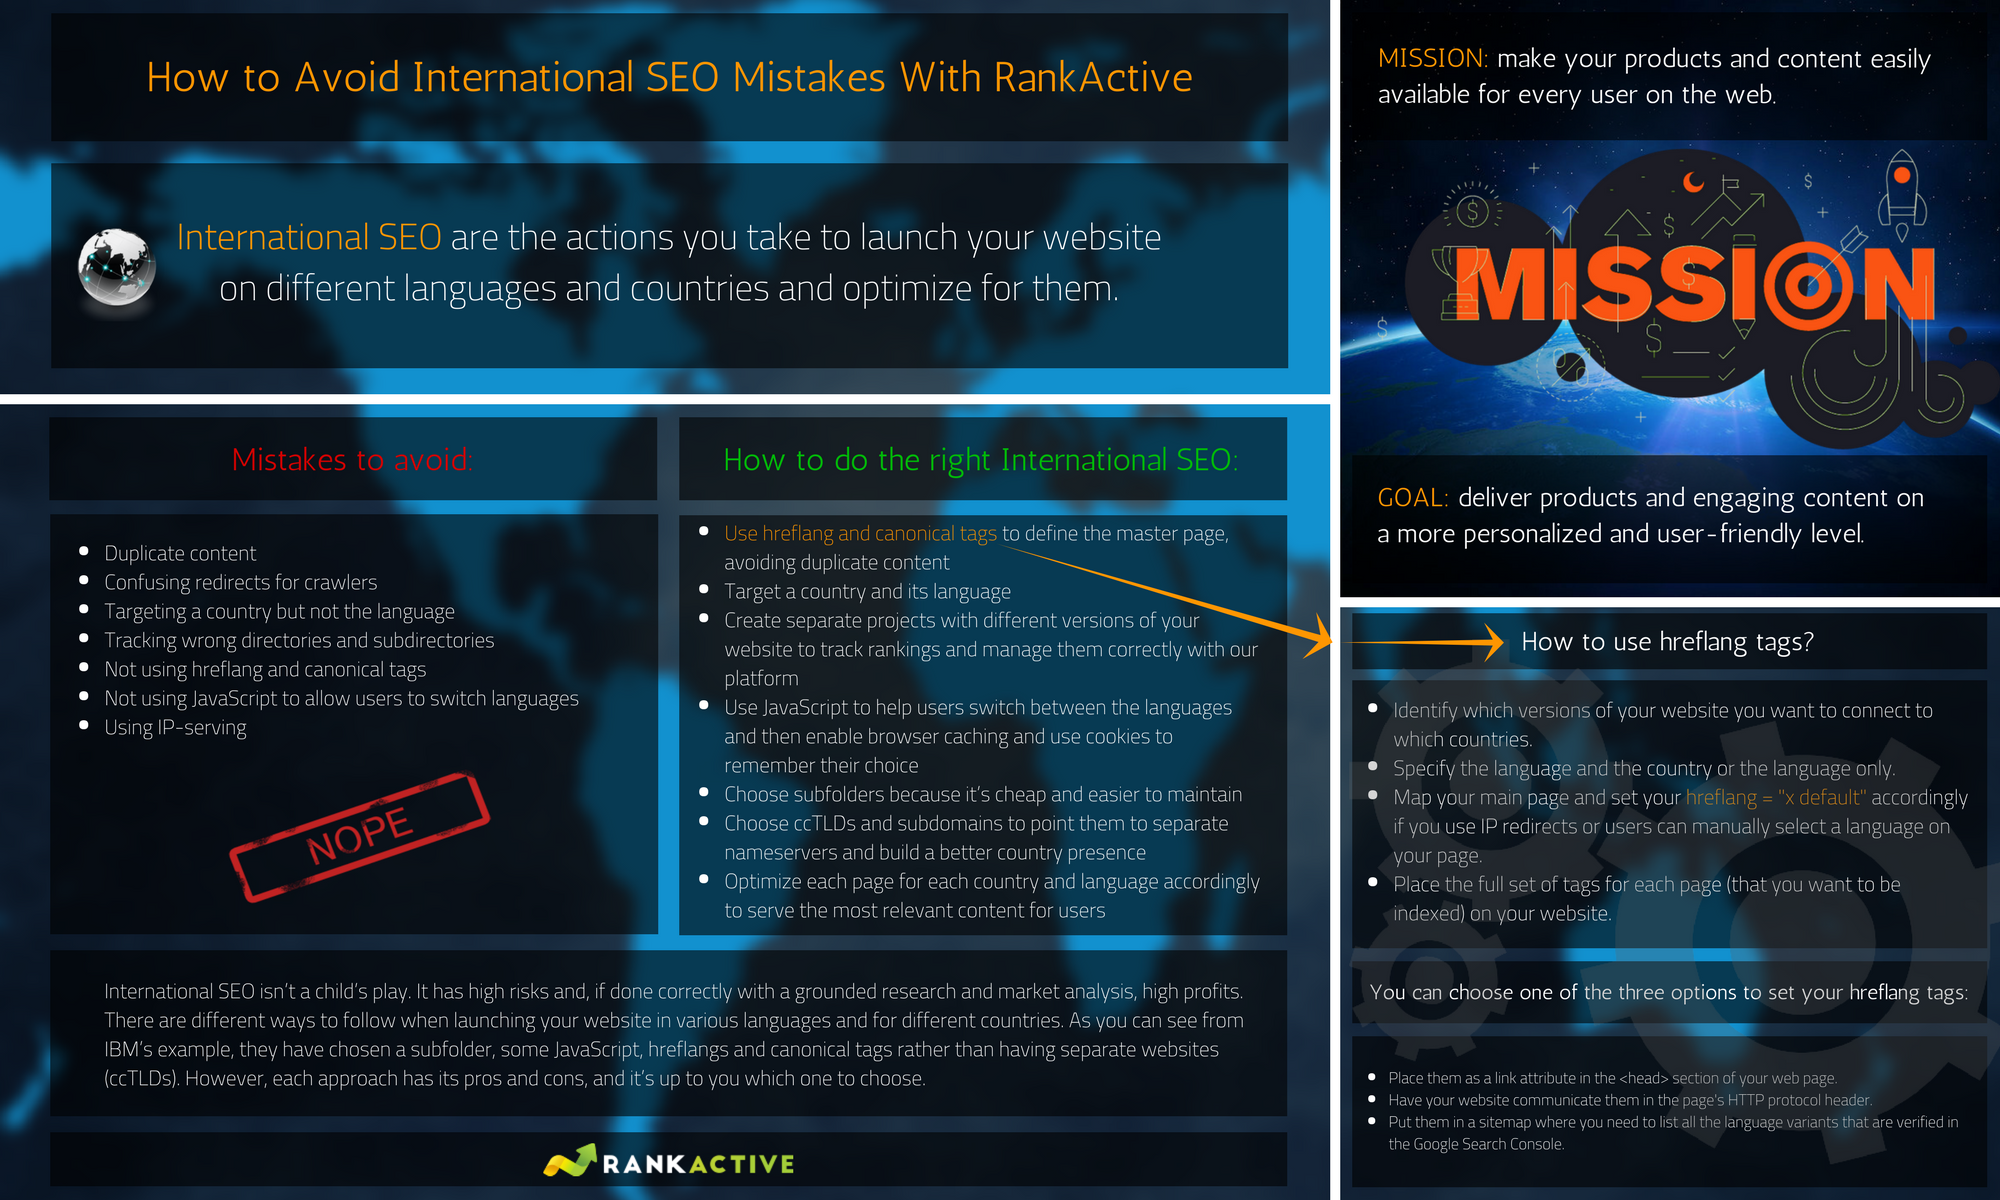 How-to-Avoid-International-SEO-Mistakes-With-RankActive